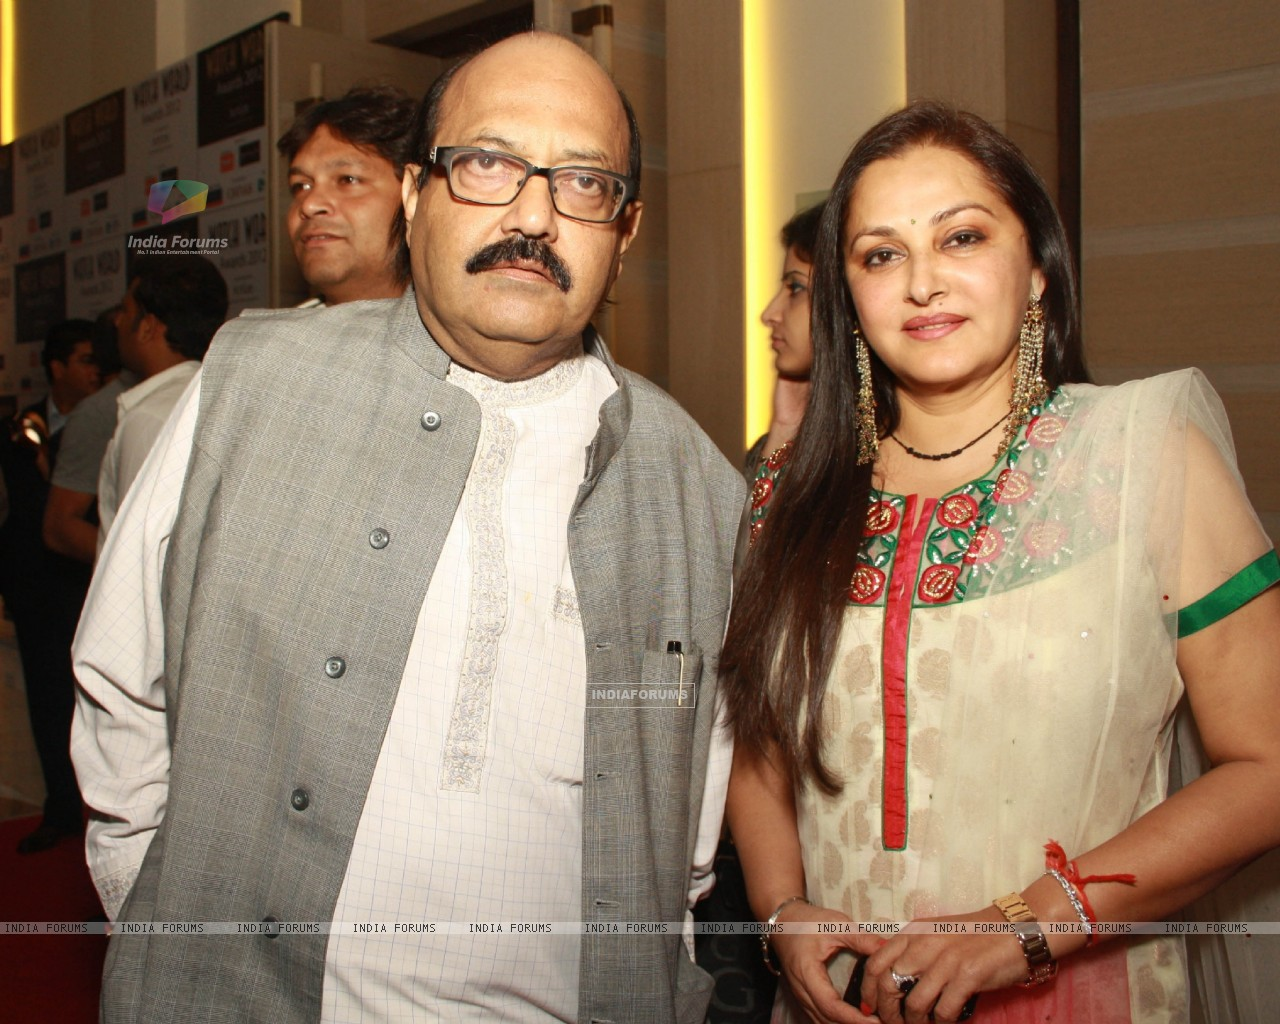 Amar singh and Jayaprada at the  Watch World Awards Function at Gurgaon in Haryana. (Photo: IANS/Amlan) (231878) size:1280x1024